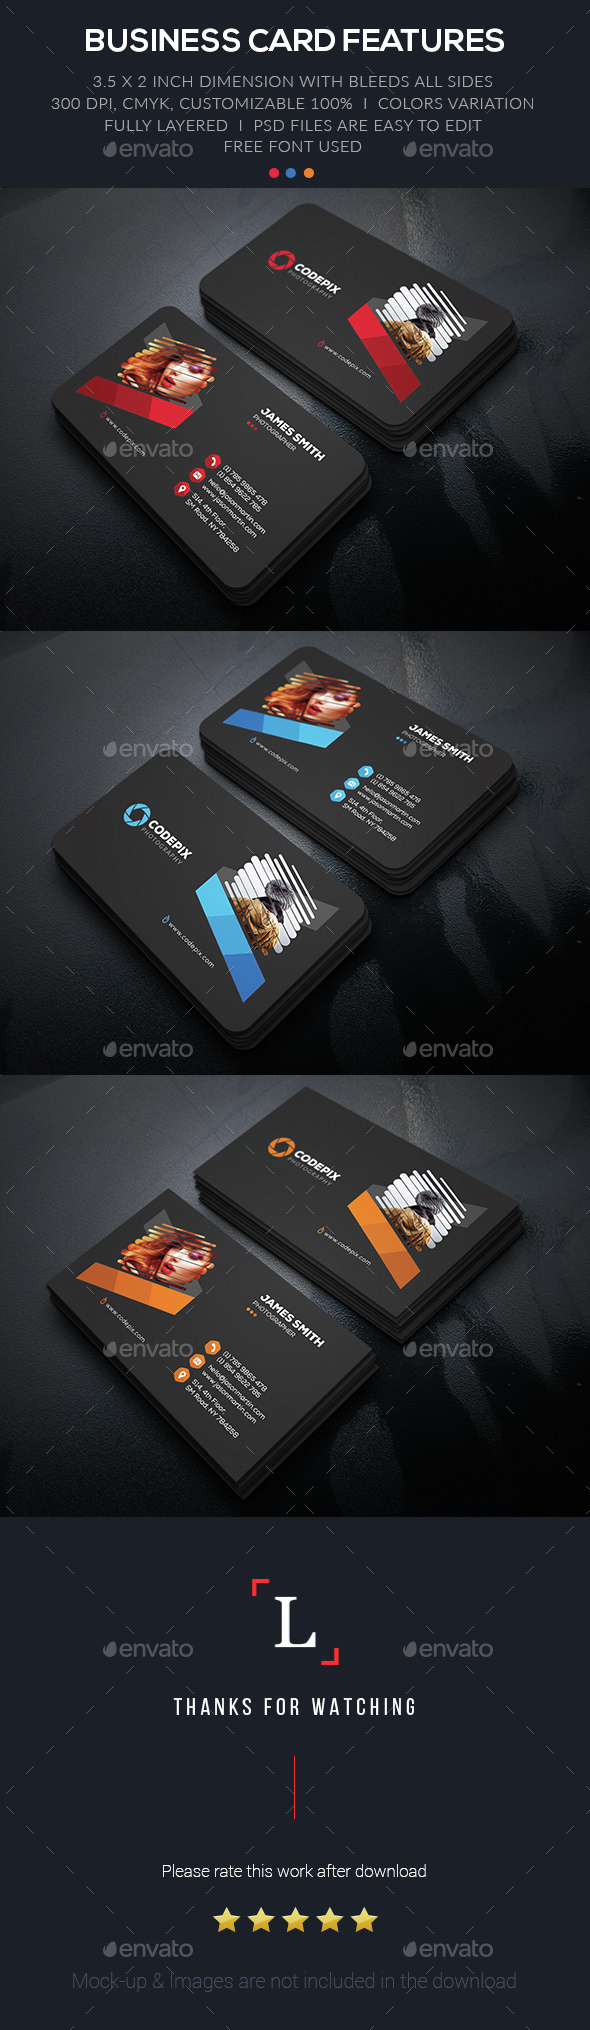 Creative Photography Business Card by UXcred | GraphicRiver